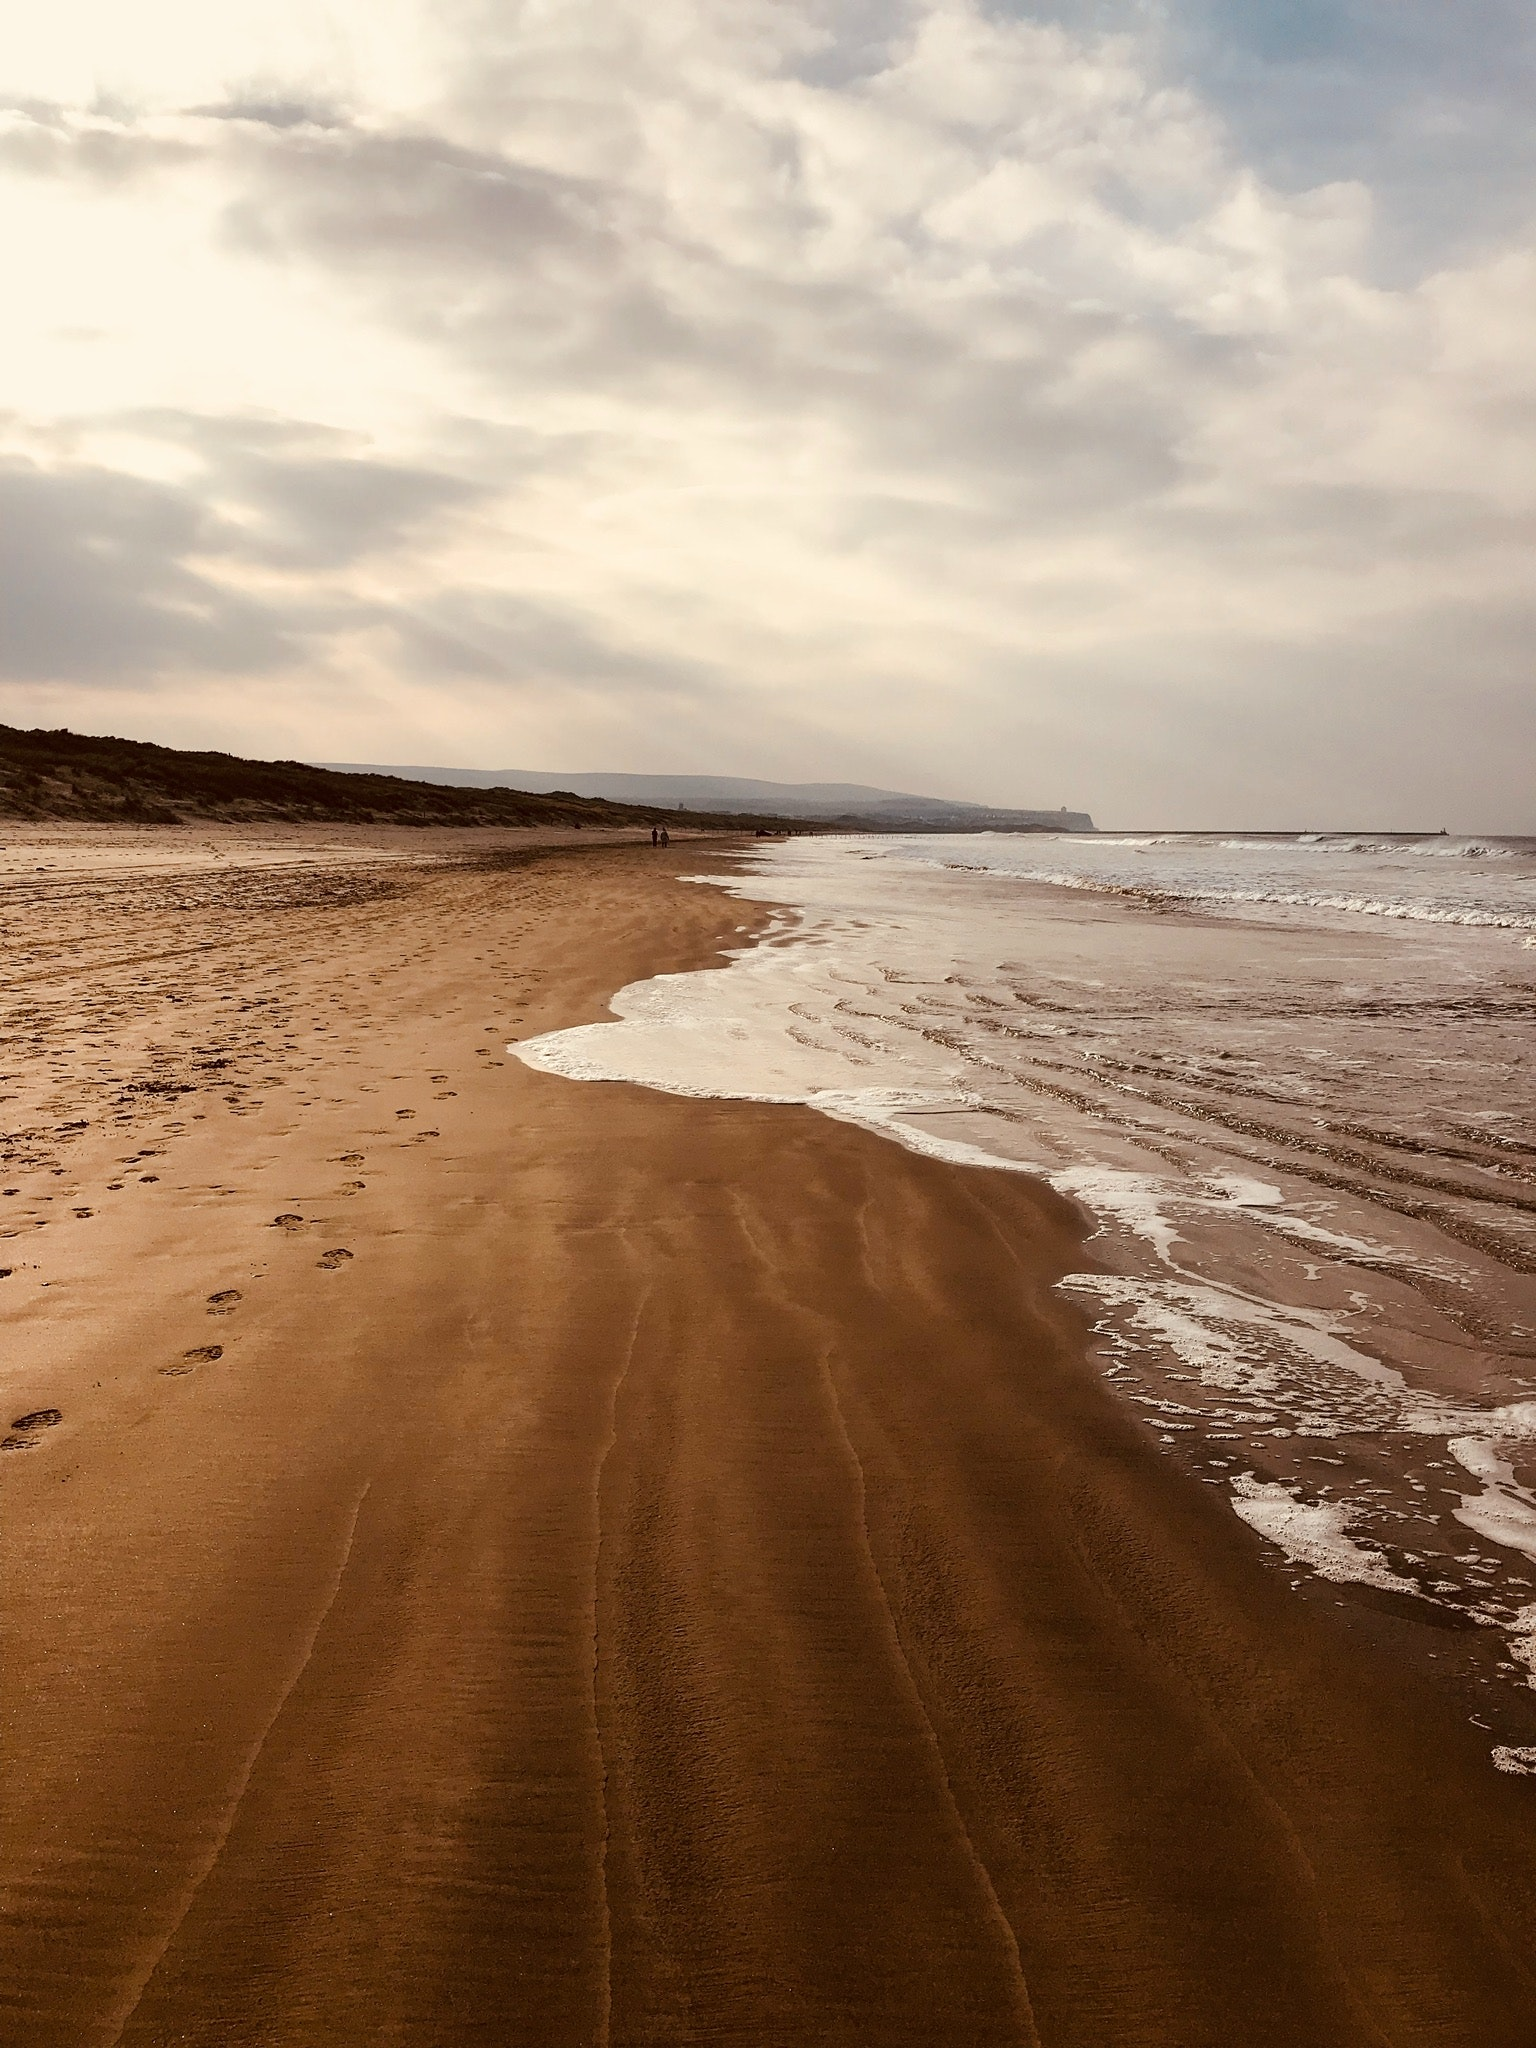 Empty Brown Sand Seashore, Beach, Water, Sky, Shore, HQ Photo